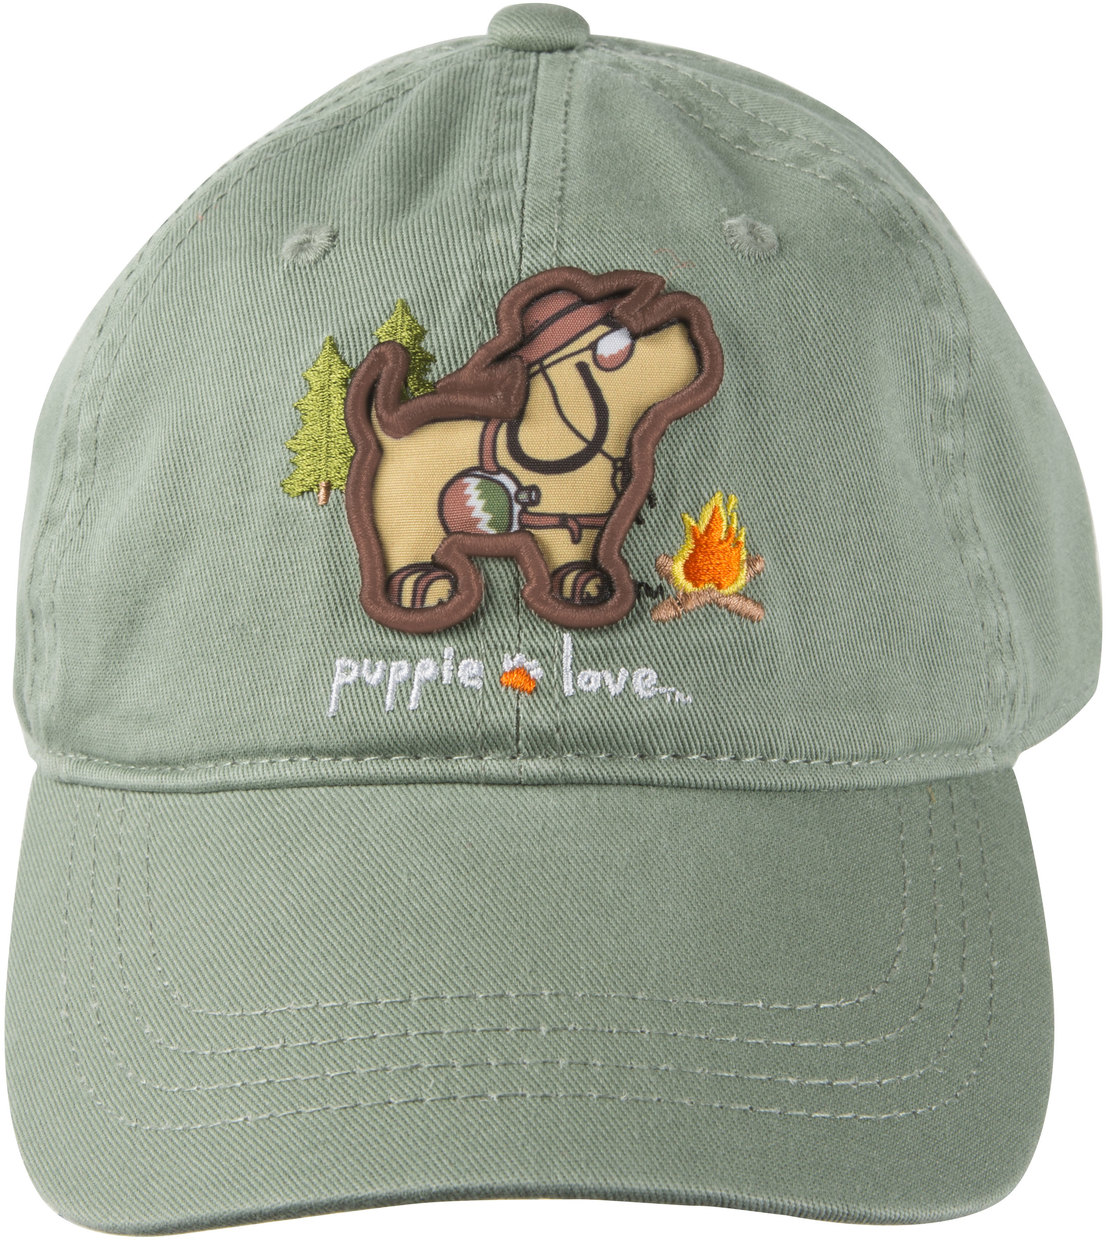 Camping by Puppie Love - Camping - Sage Adjustable Hat